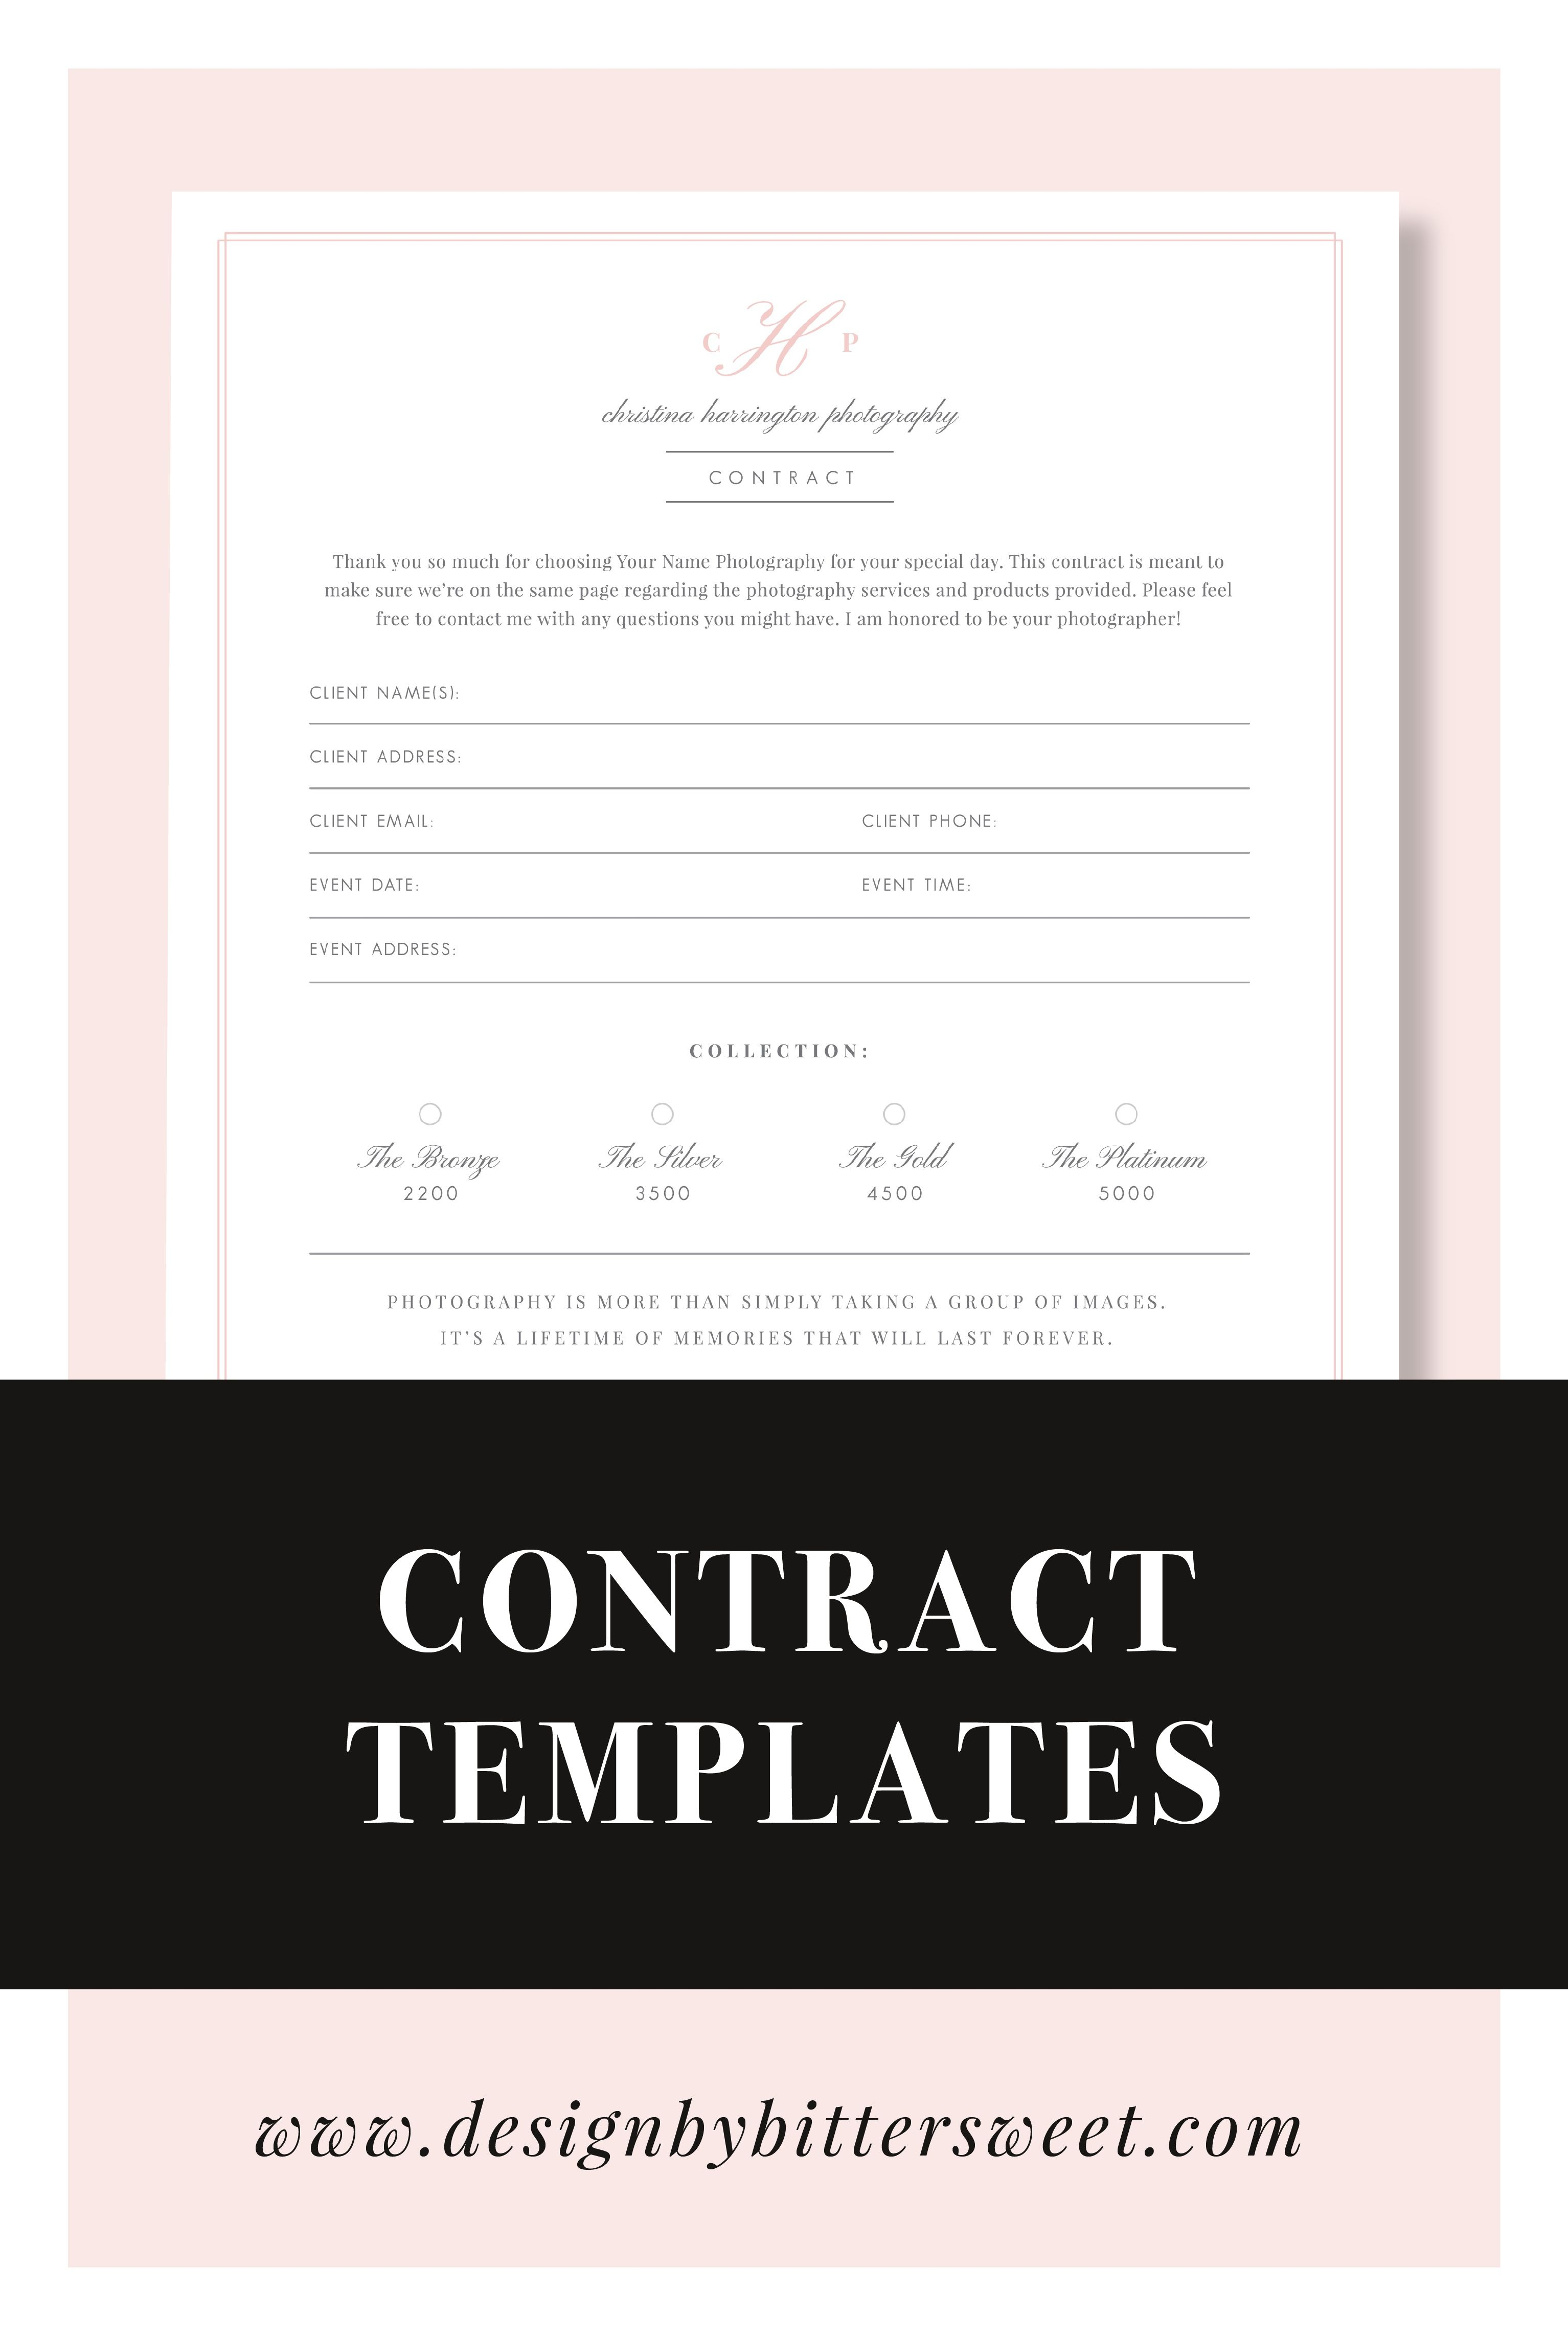 Wedding Photography Contract Template Eucalyptus Wedding Photography Contract Template Wedding Photography Contract Photography Contract